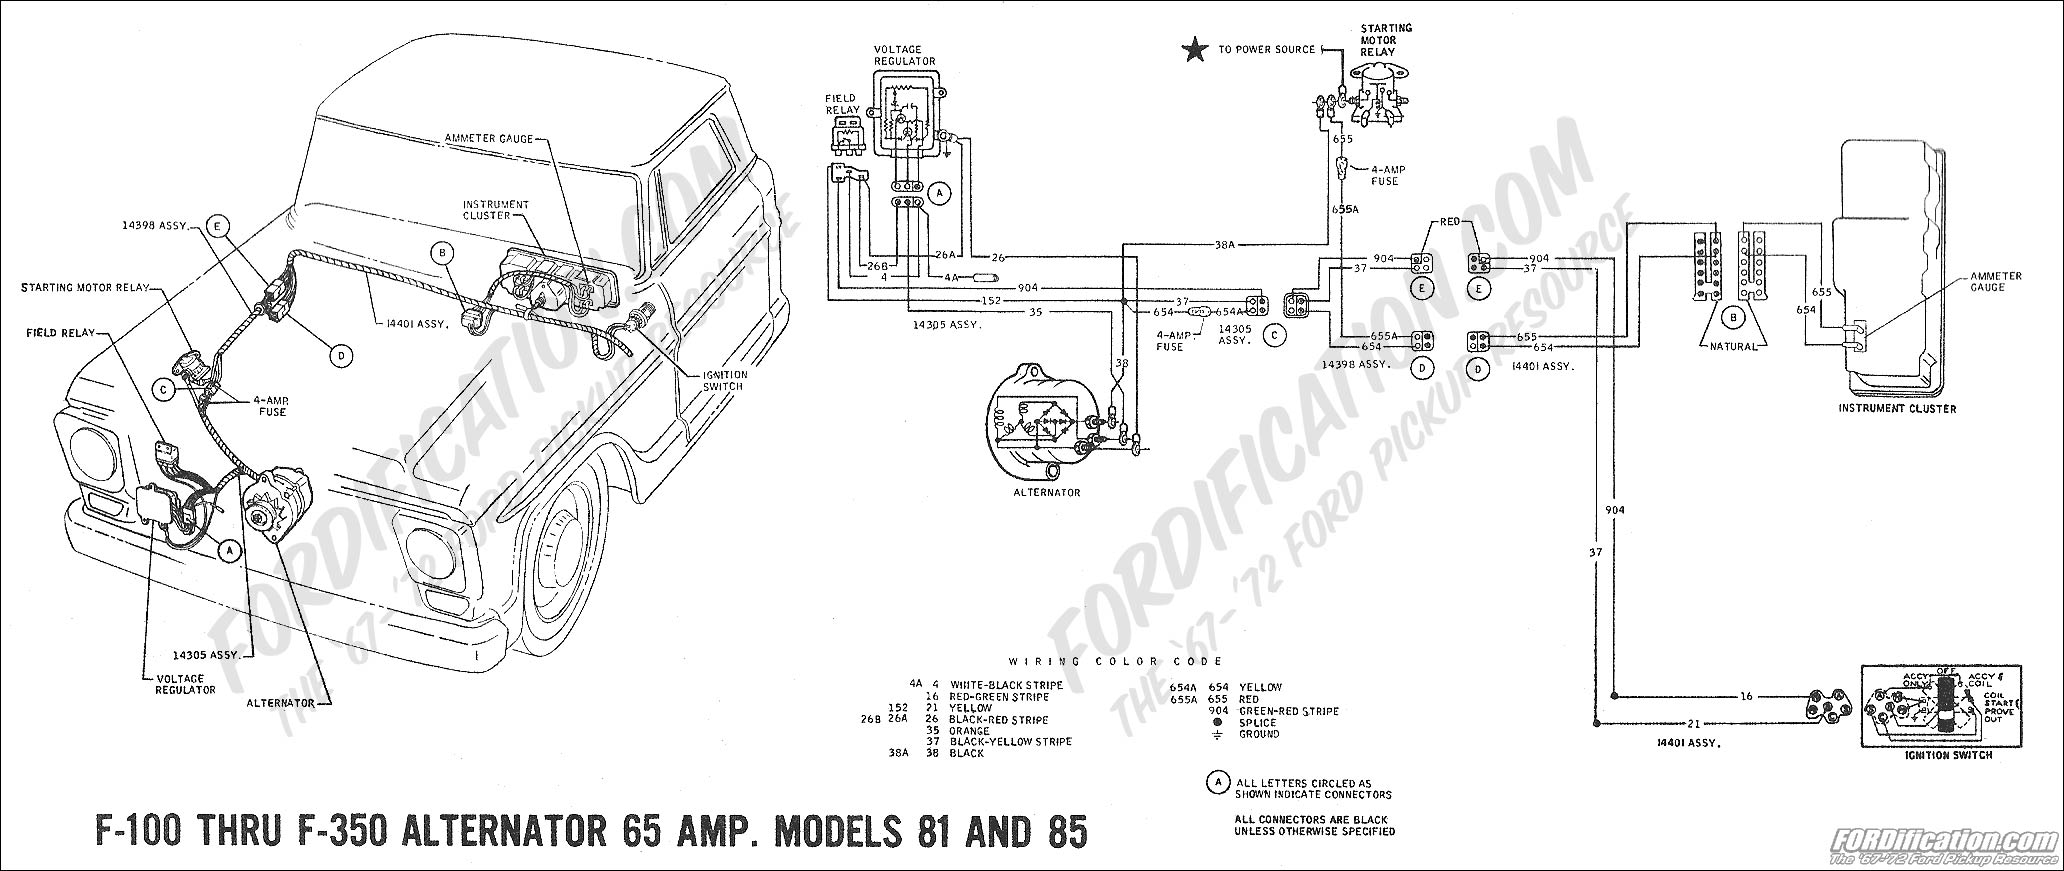 Ford F150 Alternator Wiring Diagram : F alternator wiring diagram somurich